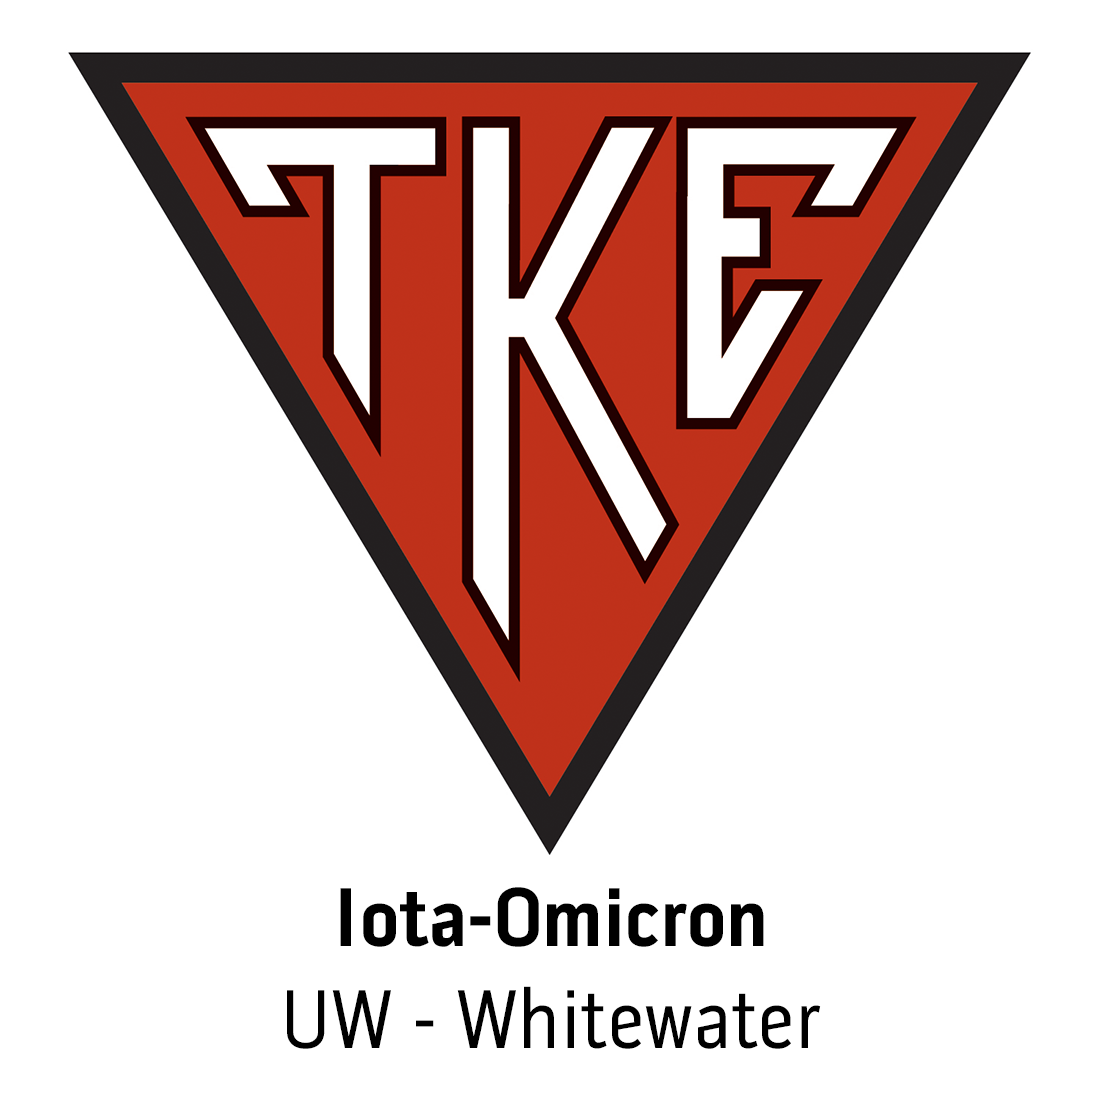 Iota-Omicron C at University of Wisconsin-Whitewater